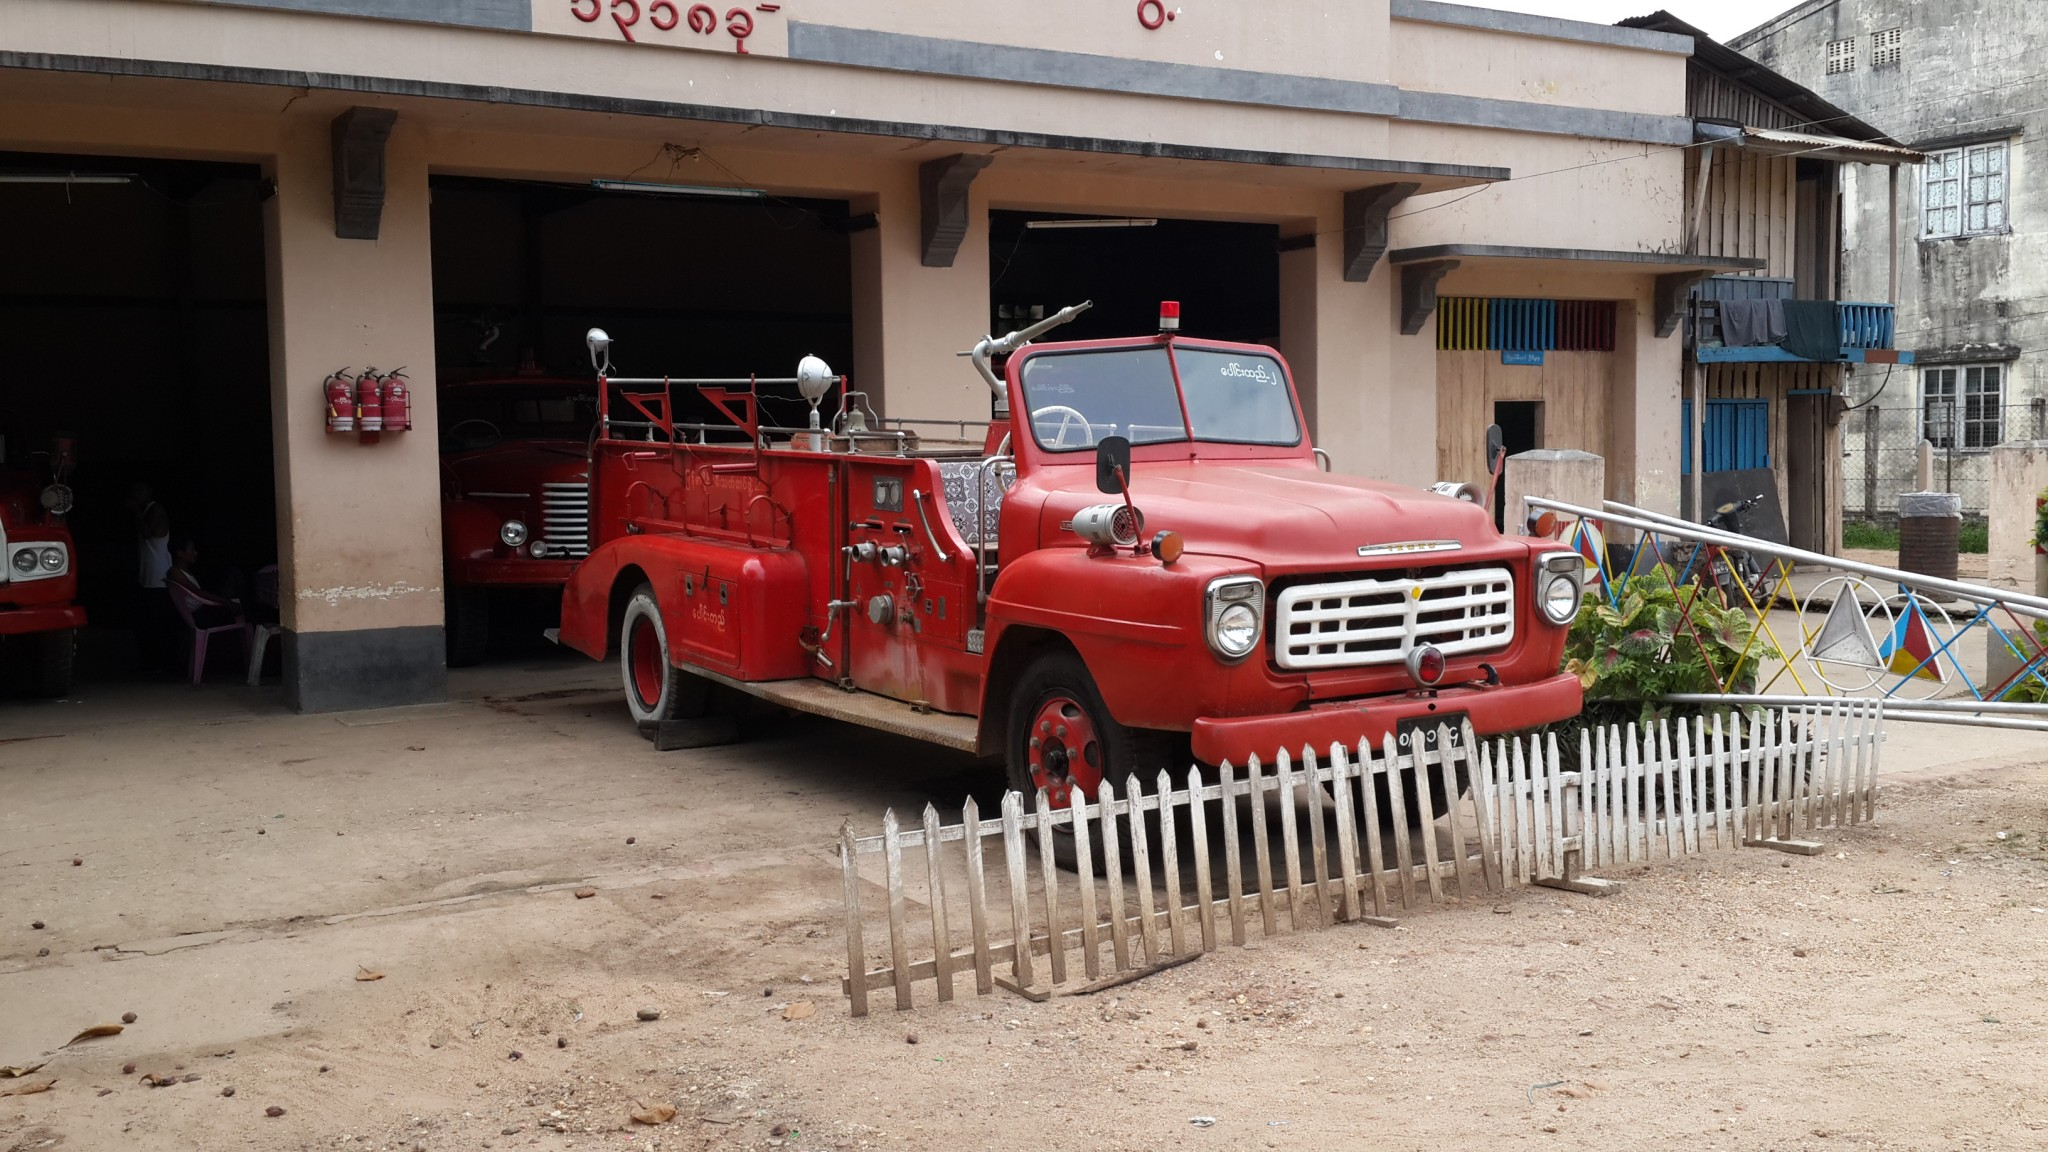 With fire engines like this I want to be a Burmese Fireman.